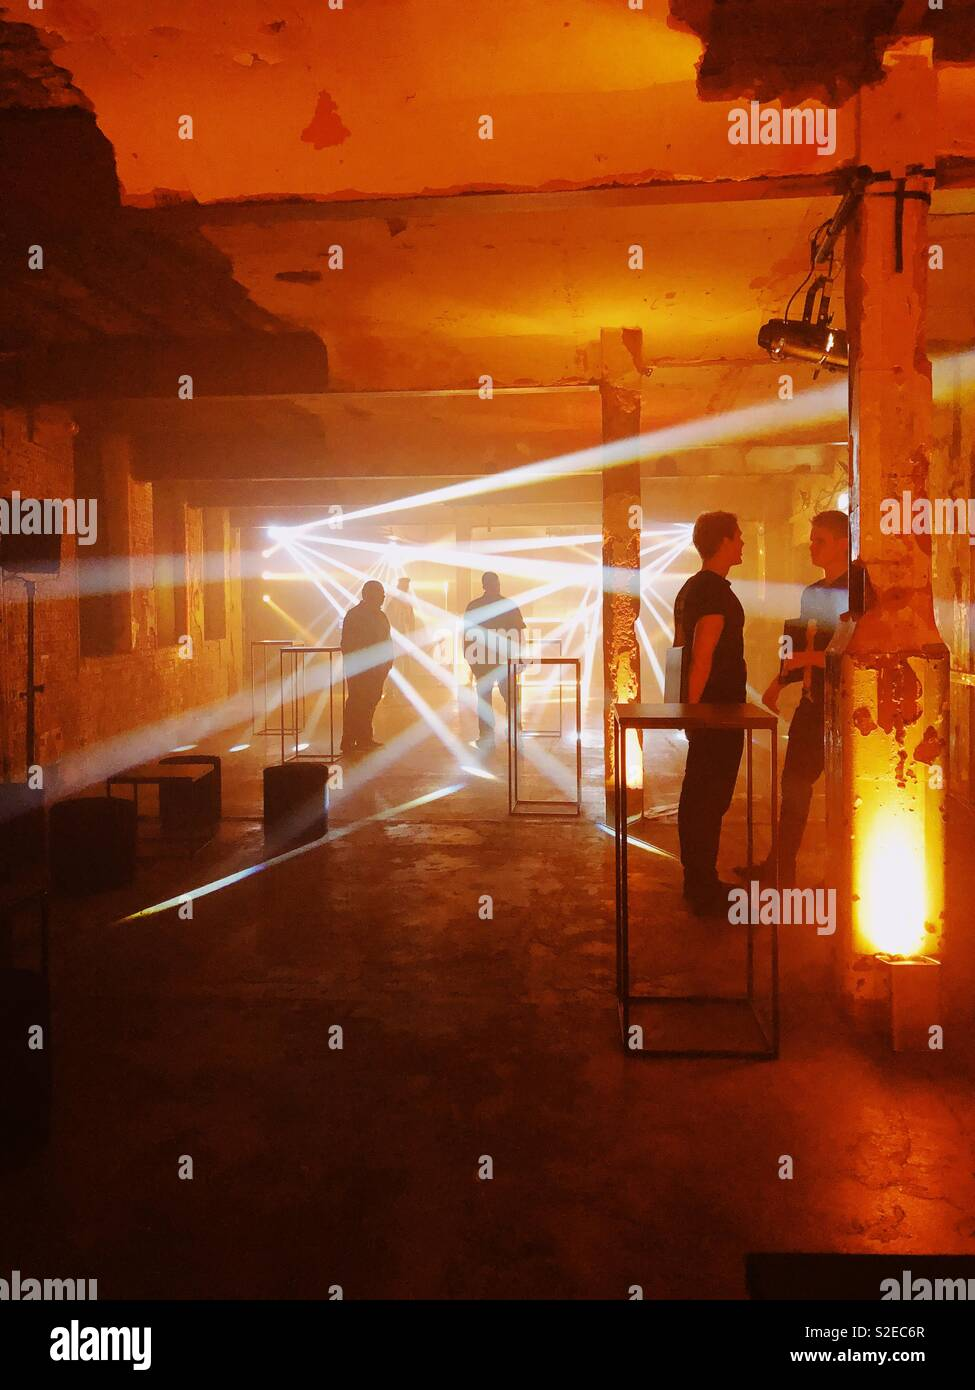 Setting up a warehouse party or rave in an industrial style old building with golden and orange toned lighting effects and organisers talking - Stock Image